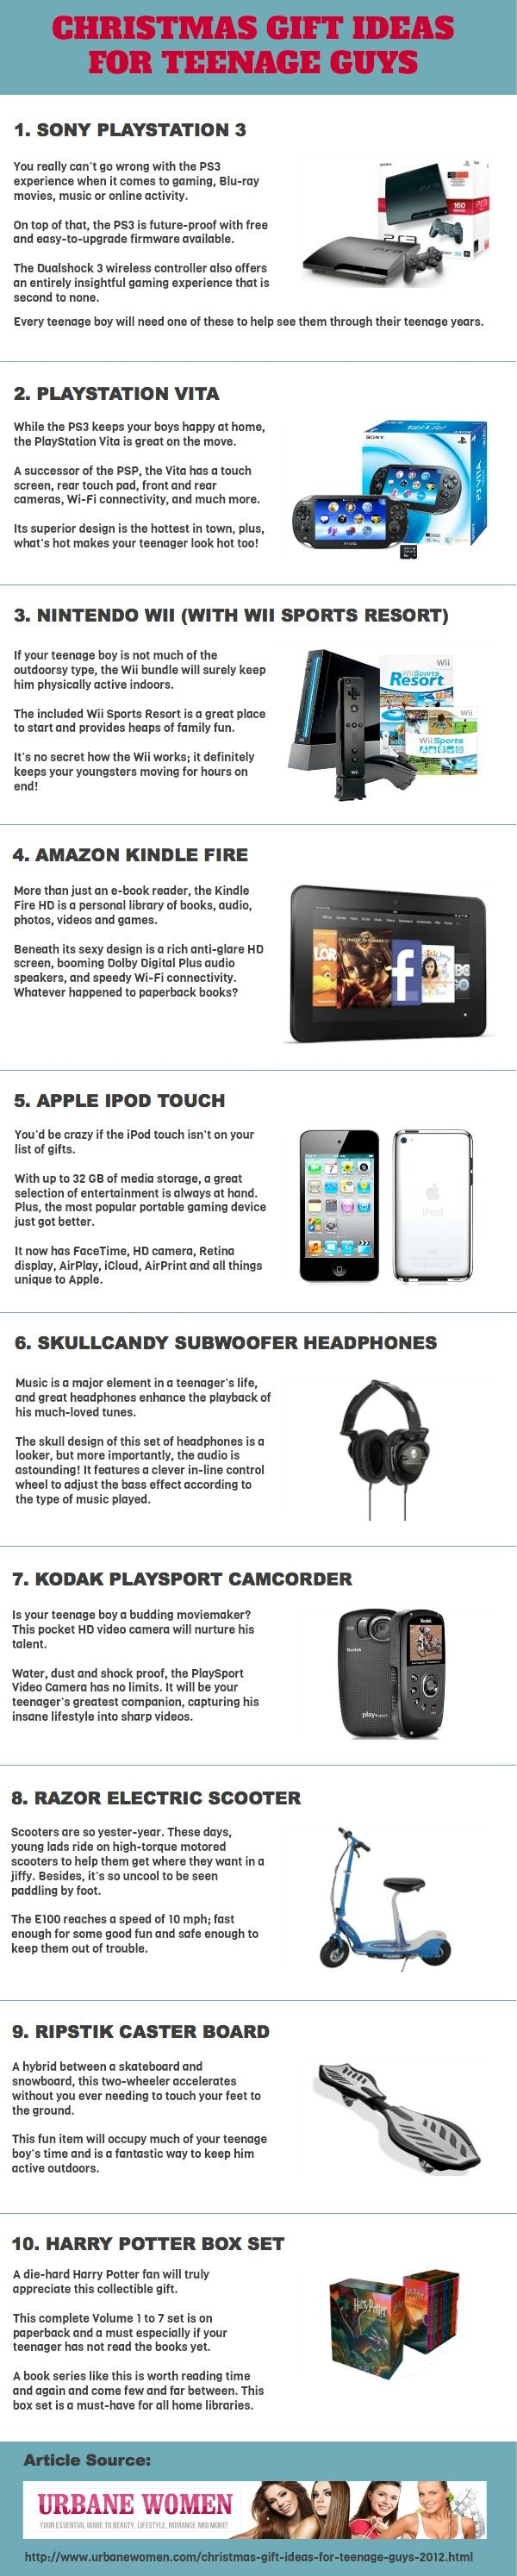 Christmas Gift Ideas Teenage Guys Part - 40: Awesome Christmas Gift Ideas For Teenage Guys 2012 Infographic